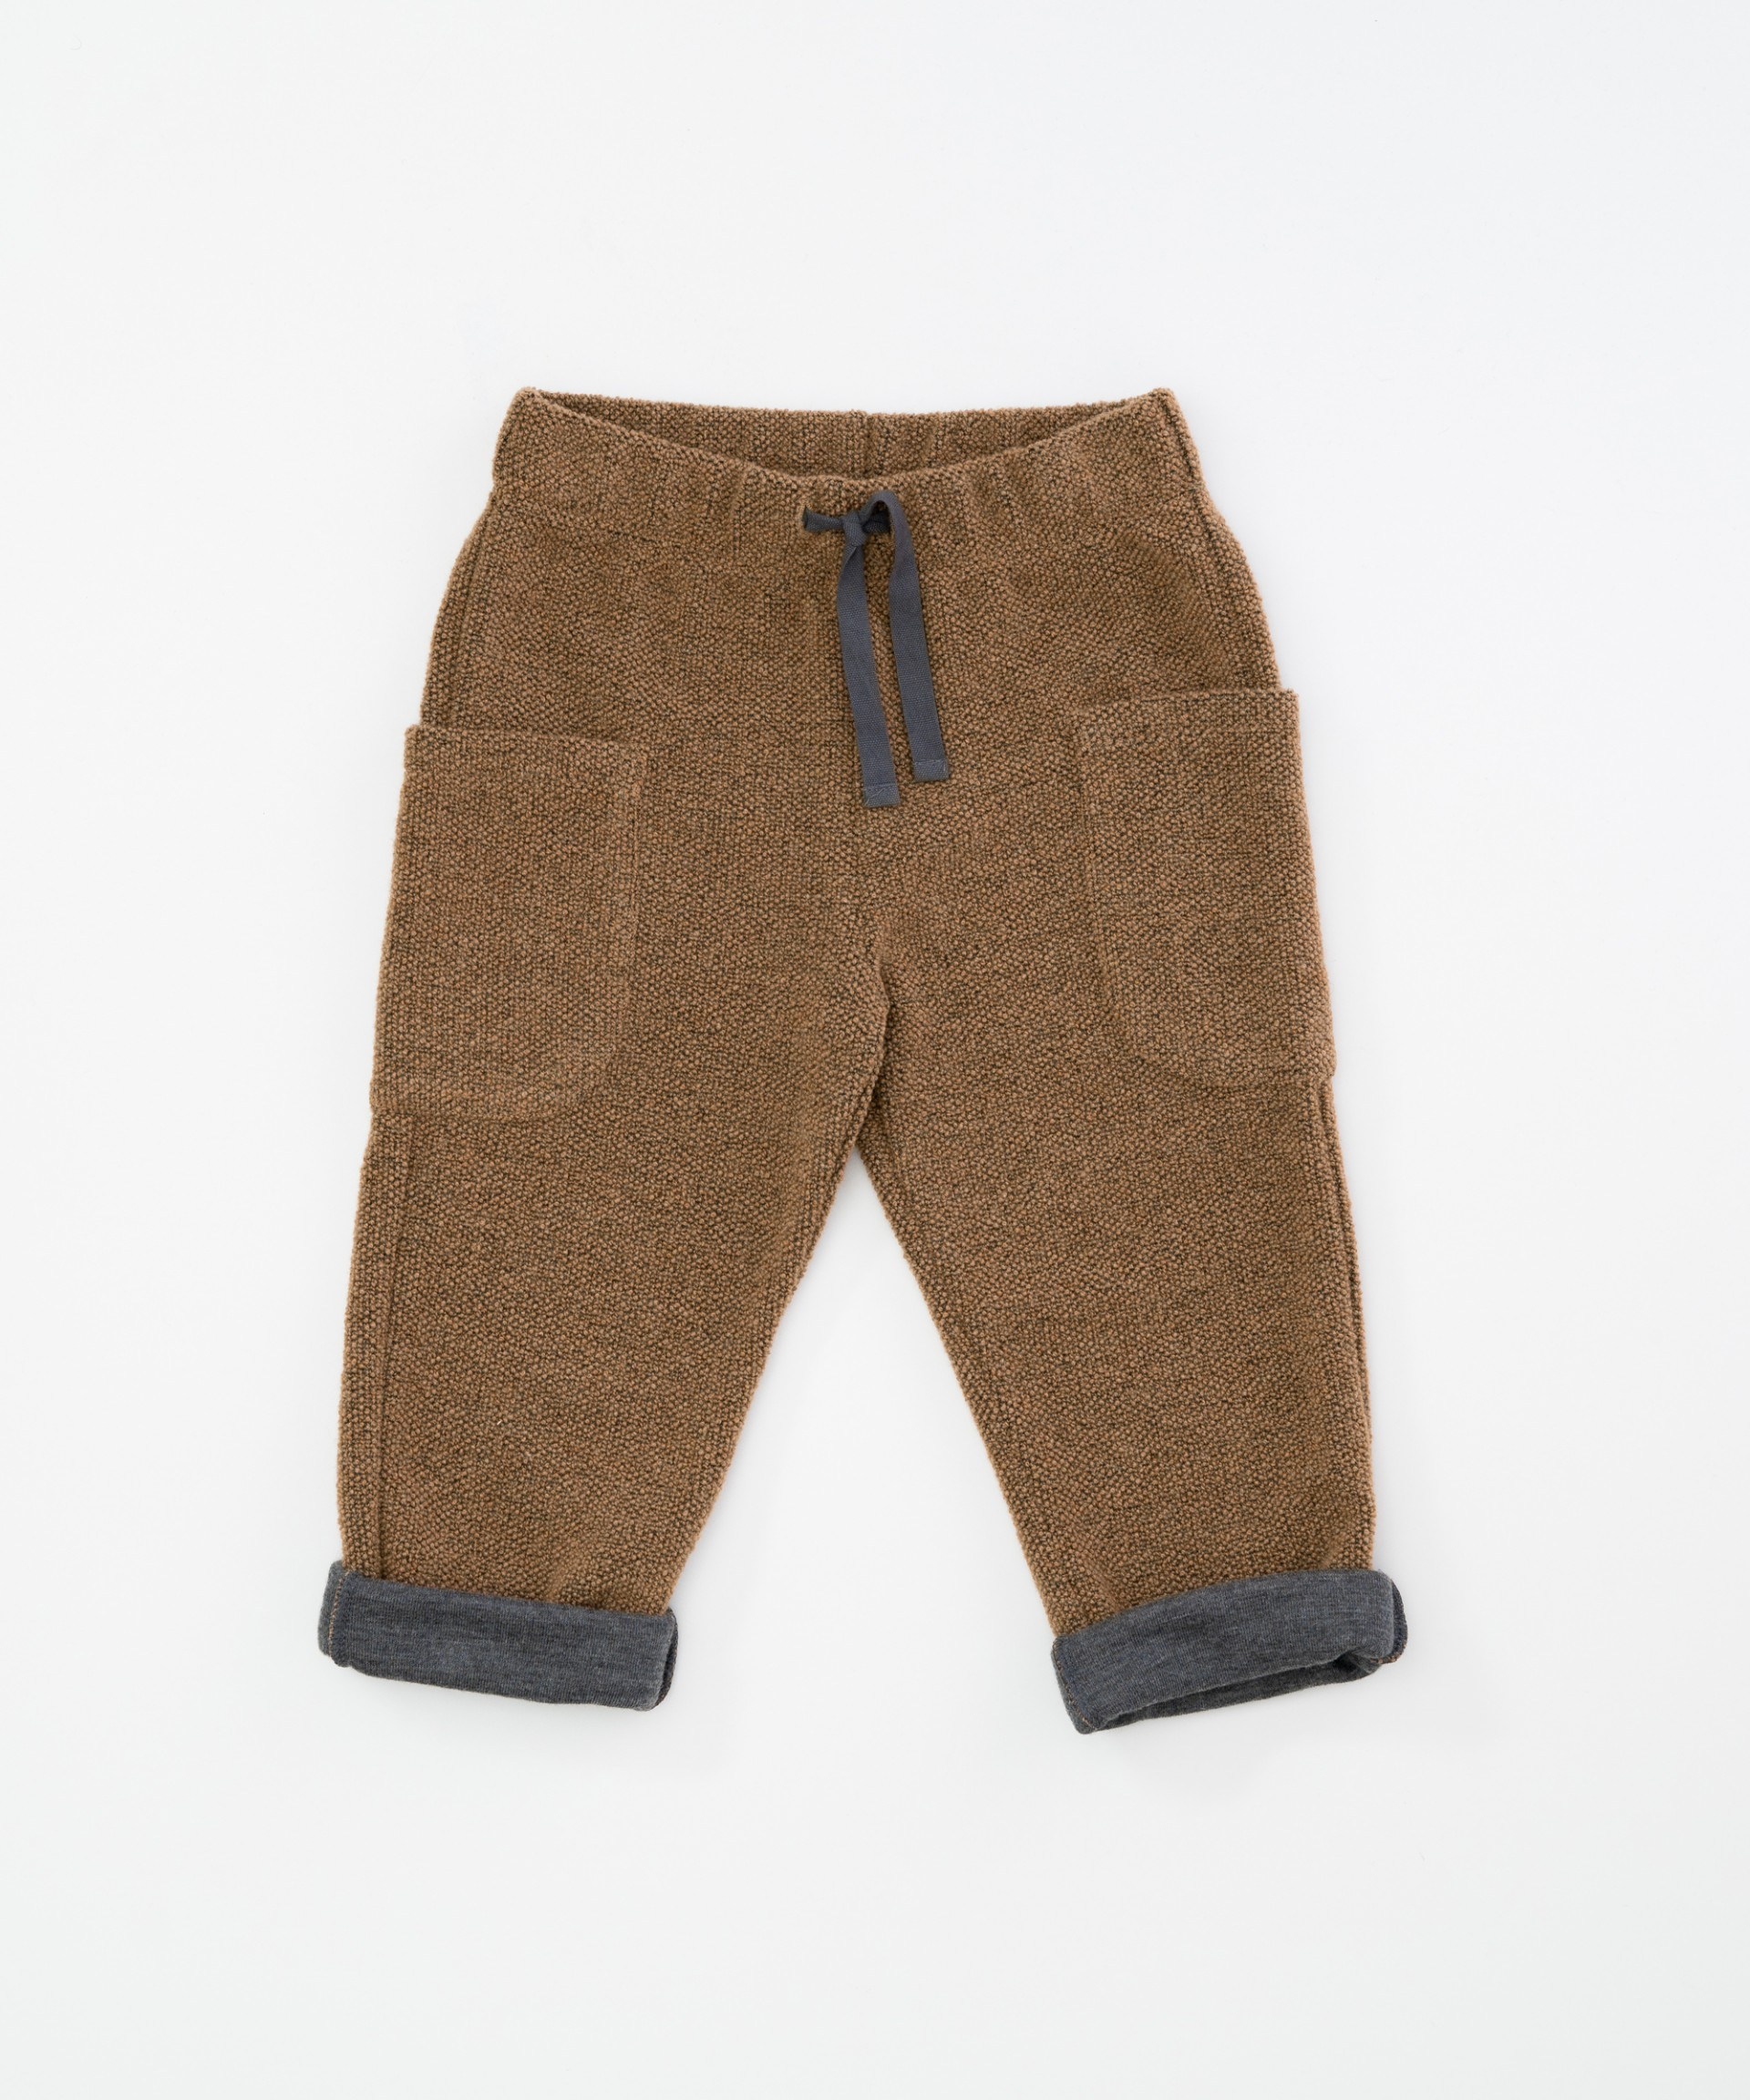 Trousers with pockets | Woodwork